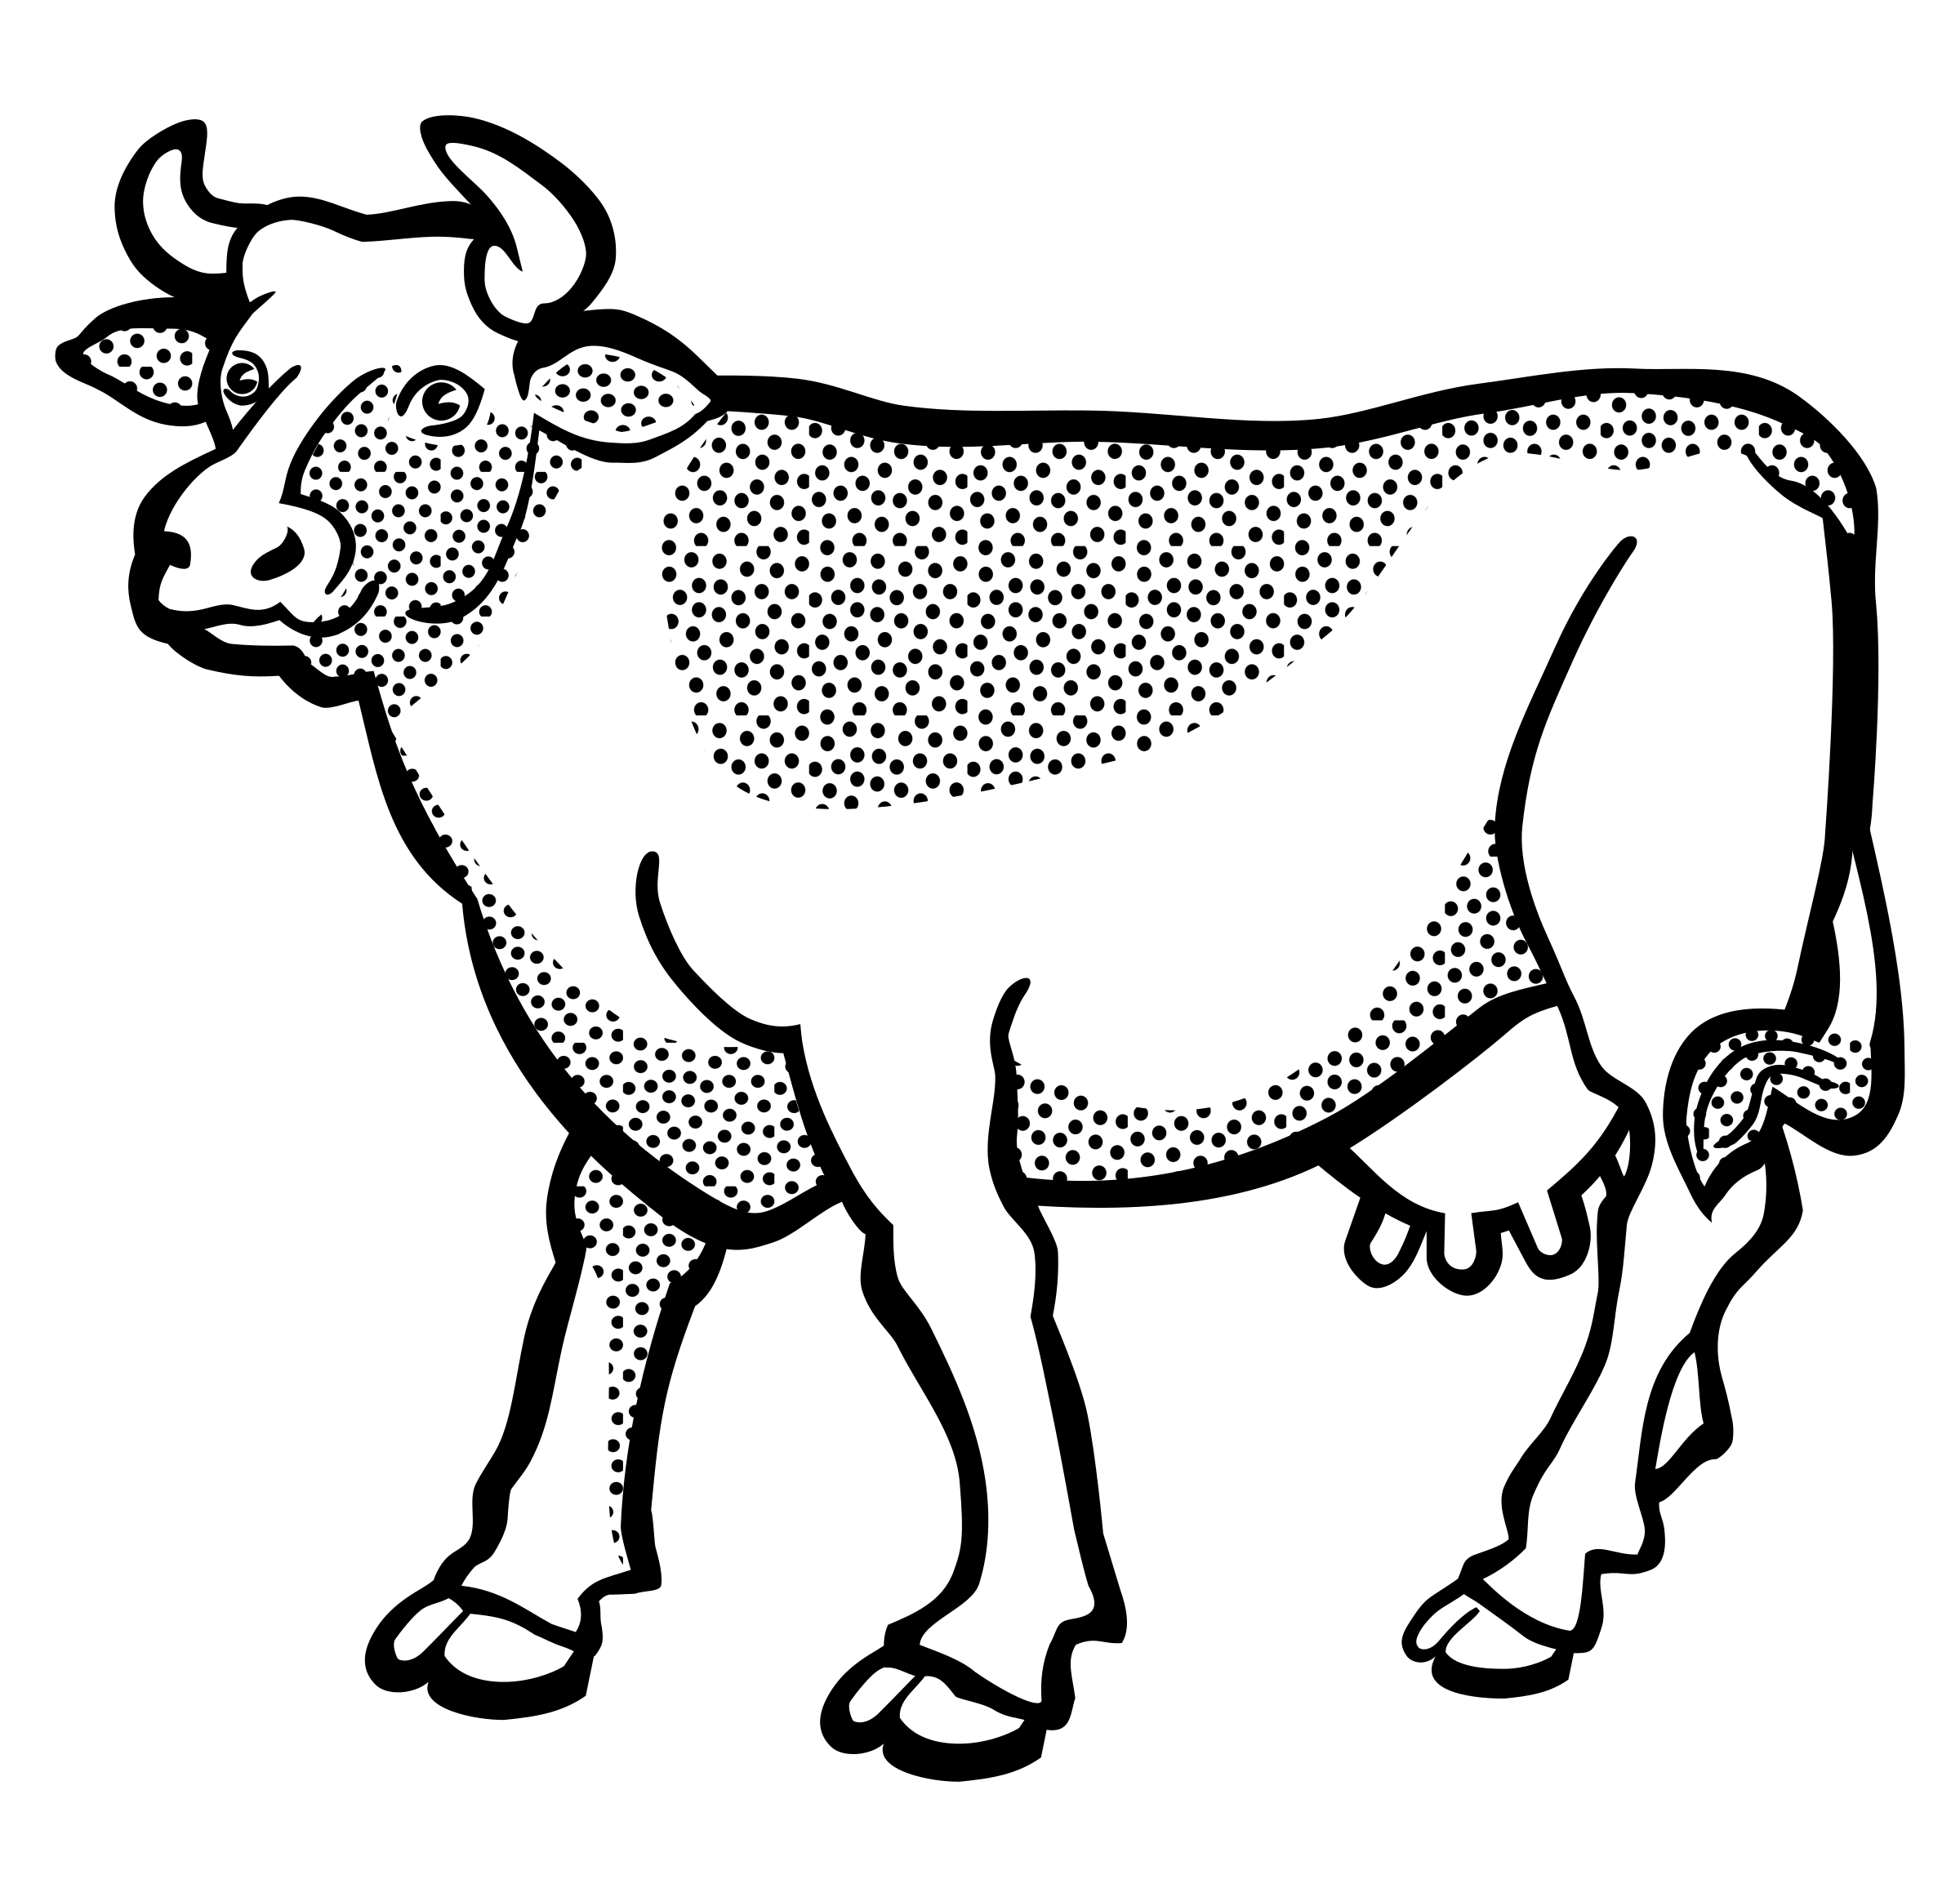 Cow clipart sketch, Cow sketch Transparent FREE for download